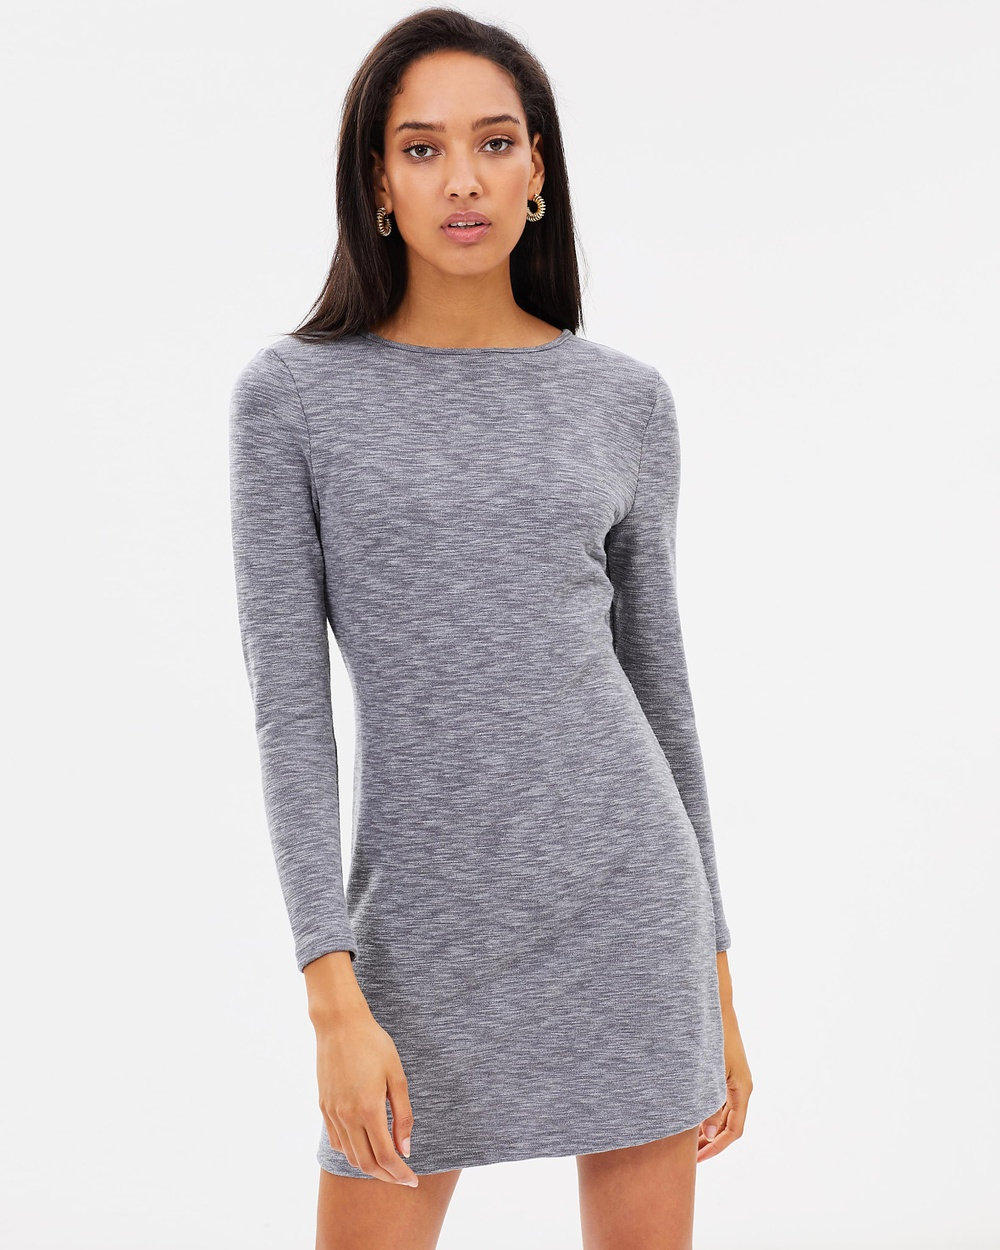 Atmos & Here ICONIC EXCLUSIVE Alexa Jersey Shift Dress Dresses Grey Marle ICONIC EXCLUSIVE Alexa Jersey Shift Dress